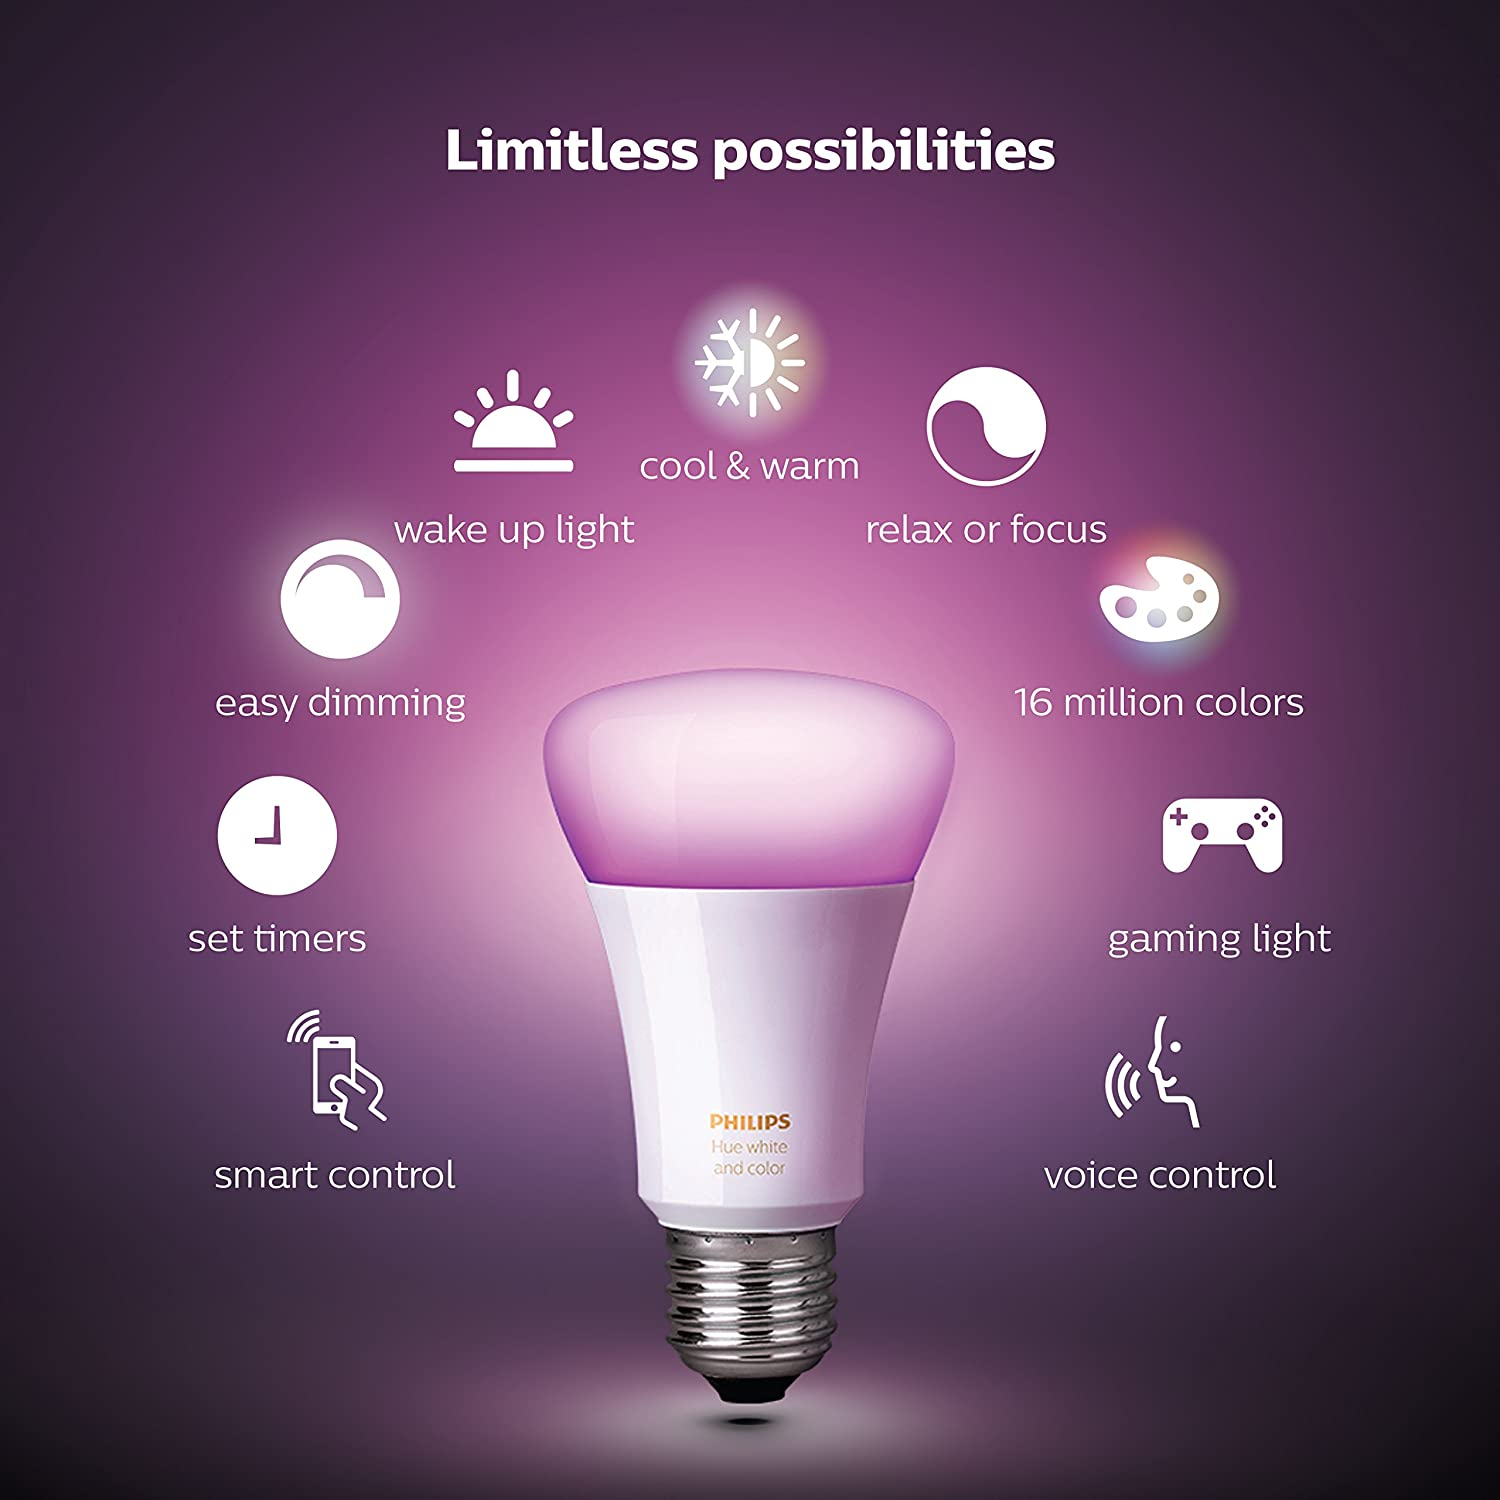 Philips Hue White And Color Ambiance A19 60w Equivalent Led Smart Bulb Starter Kit 4 A19 Bulbs And 1 Hub Compatible With Amazon Alexa Apple Homekit